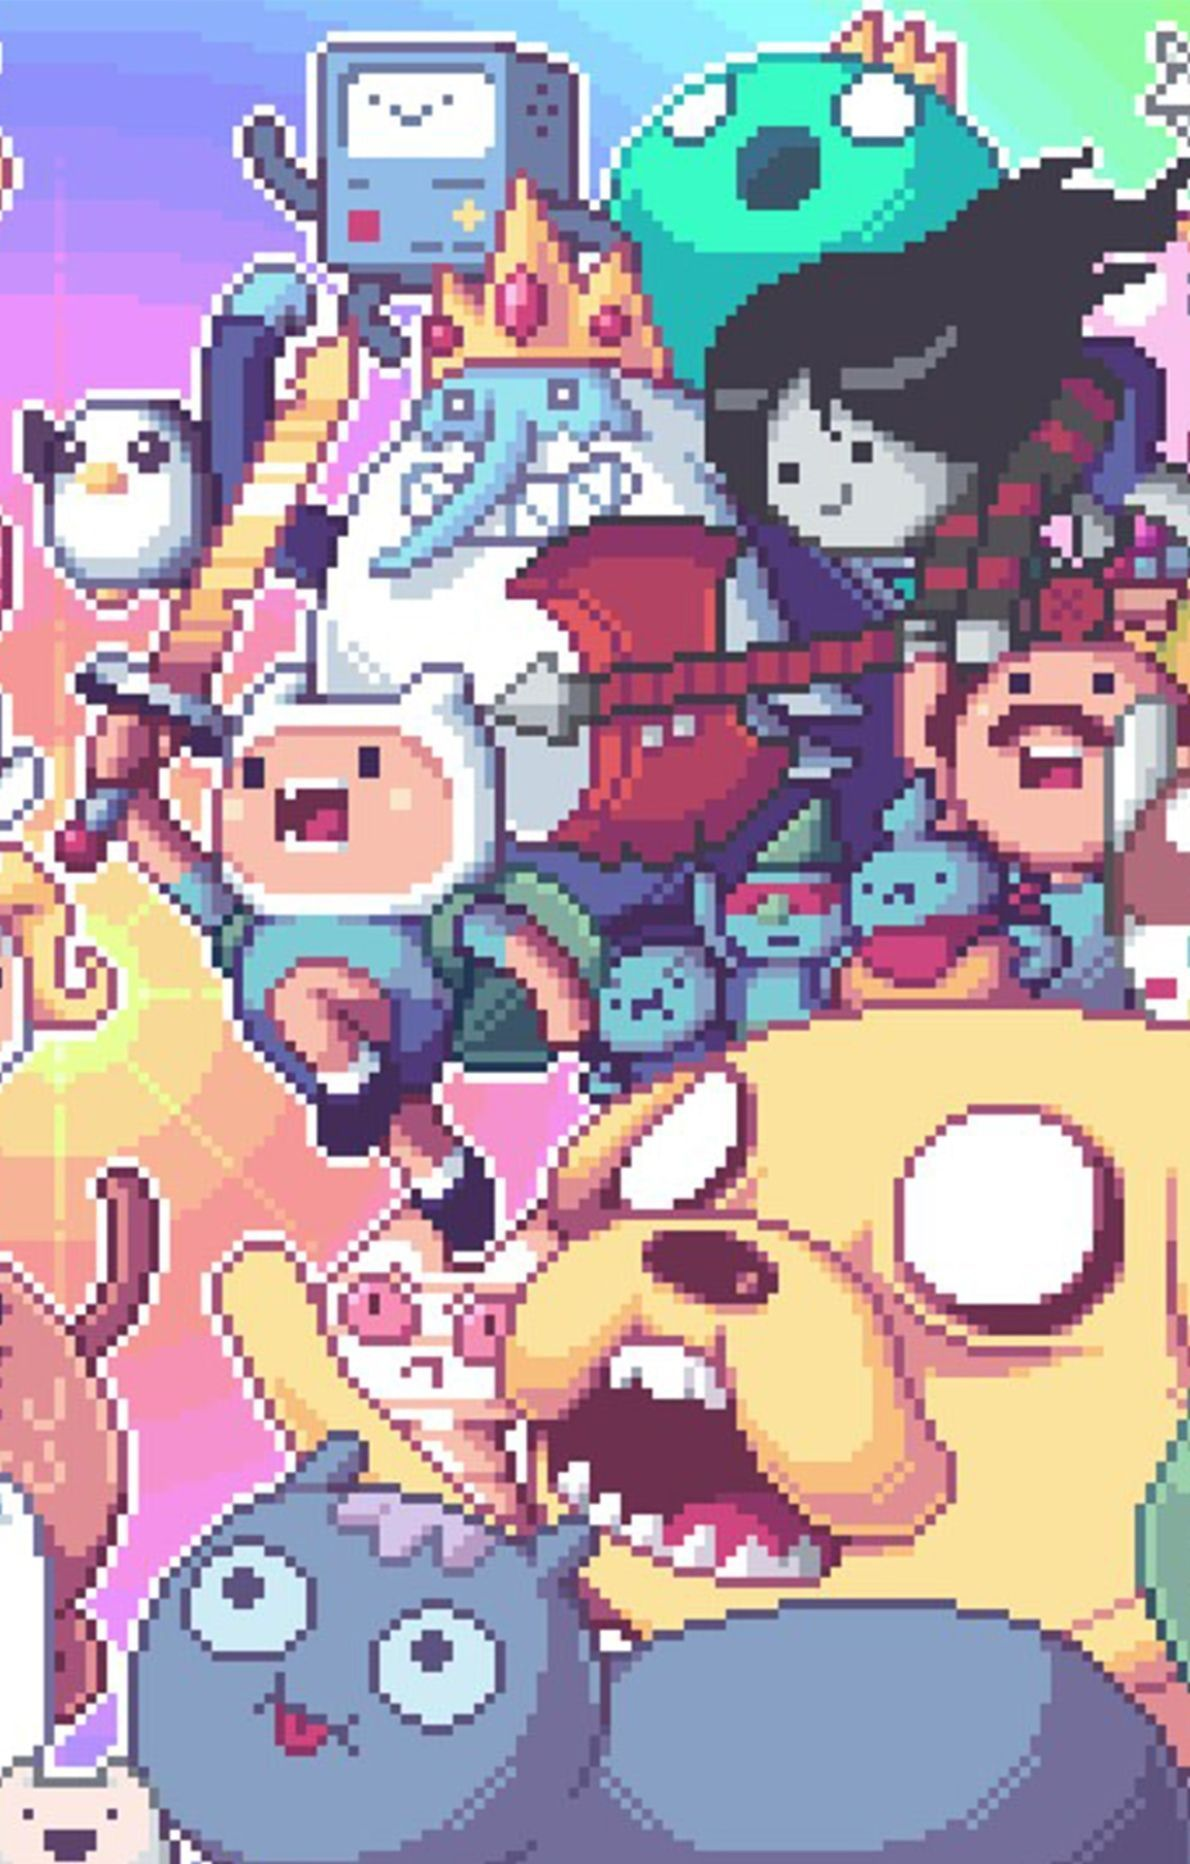 Click To Join Adventure Time Fandom On Thefandome Com Cartoon Adventuretime Fandom Adventure Time Marceline Adventure Time Cartoon Adventure Time Wallpaper